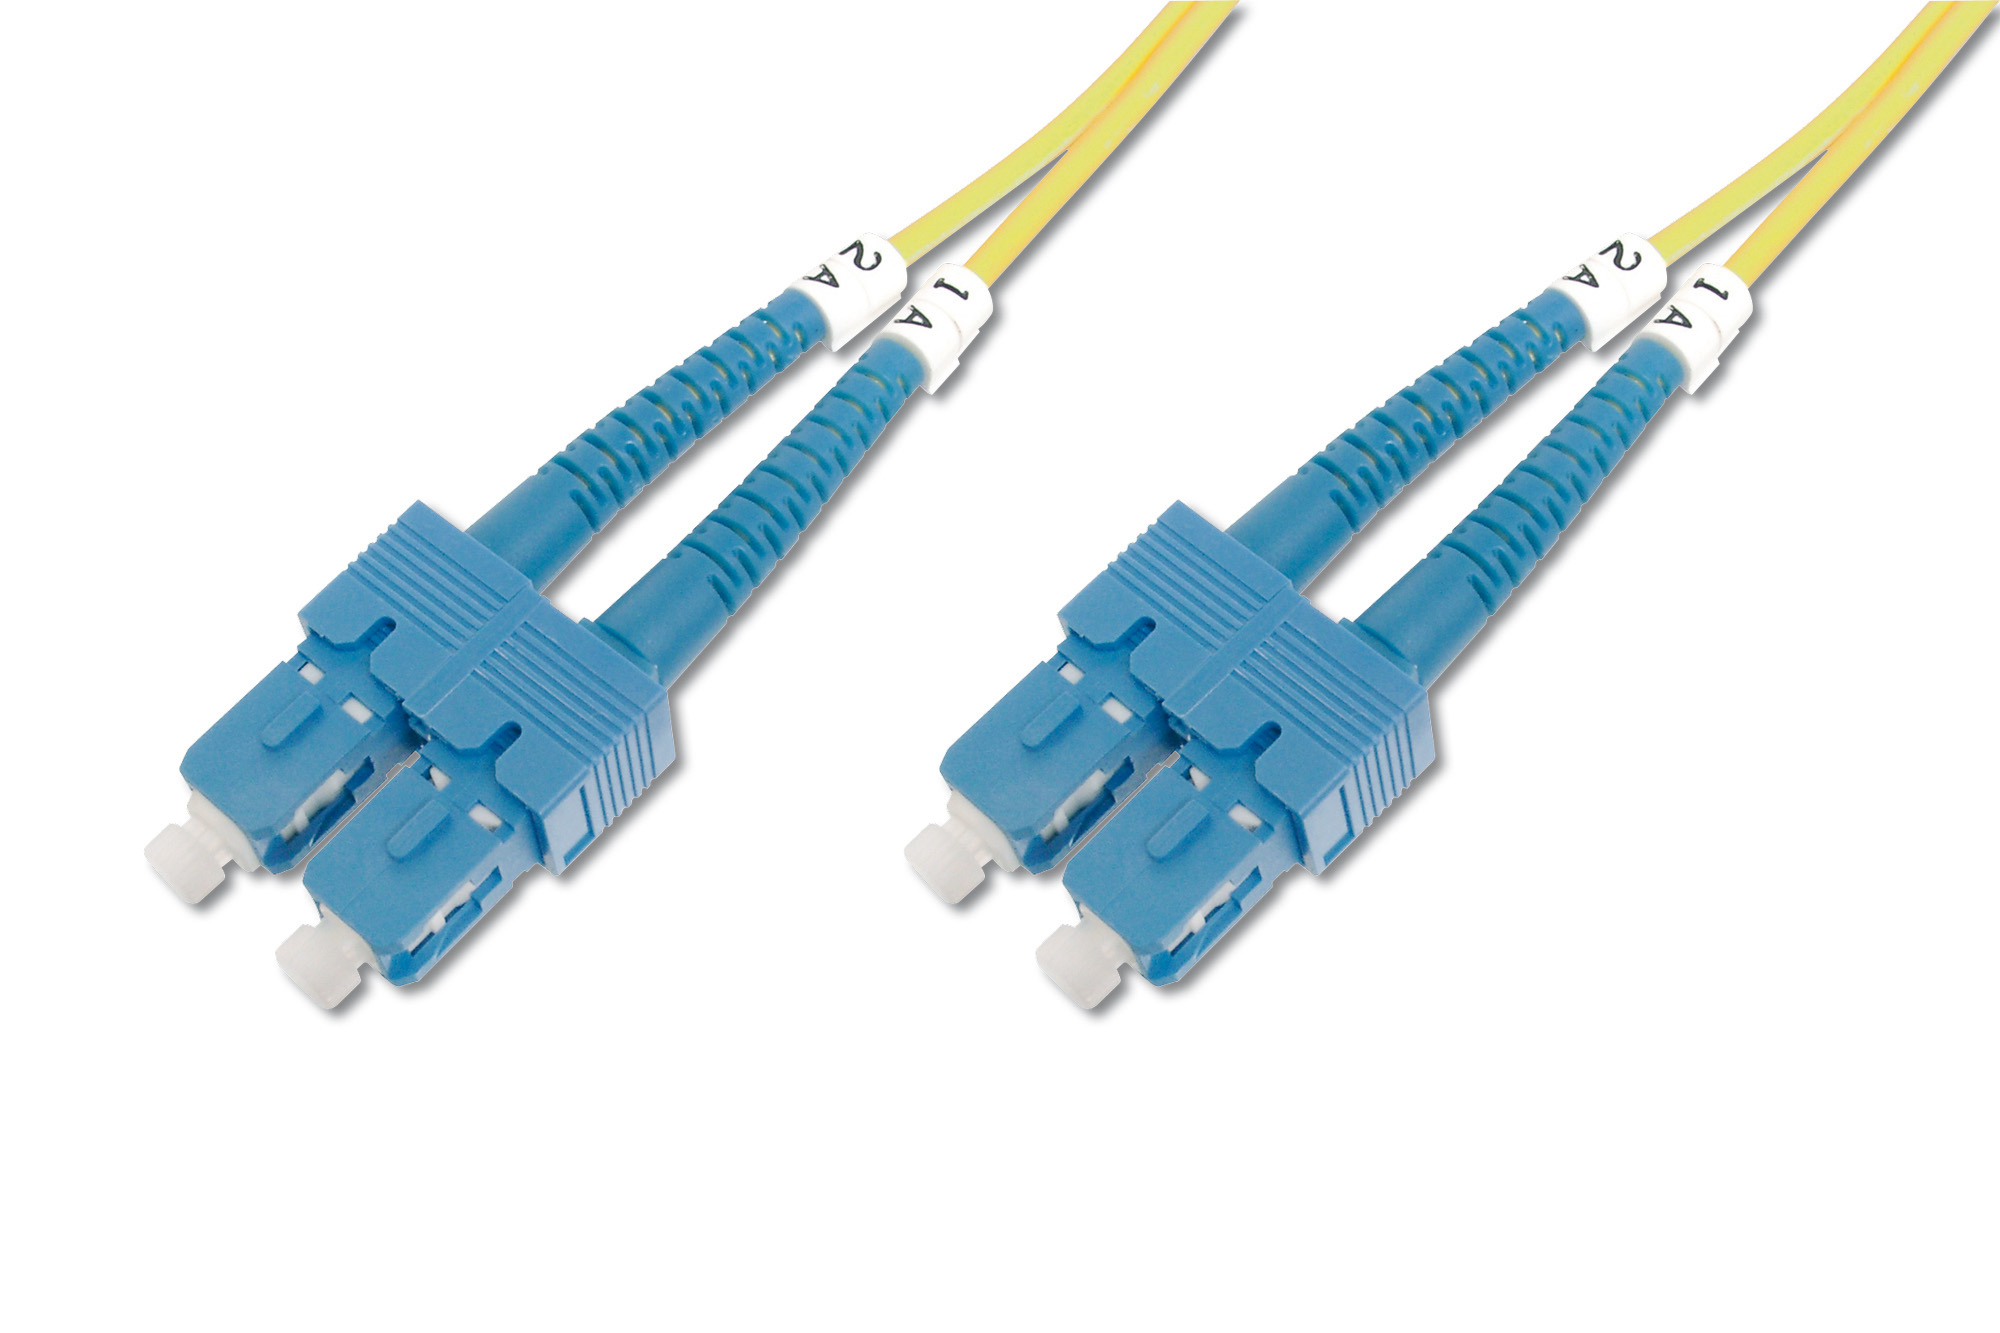 DIGITUS DK-2922-10 SC/SC, 10 M 10M SC YELLOW FIBER OPTIC CABLE